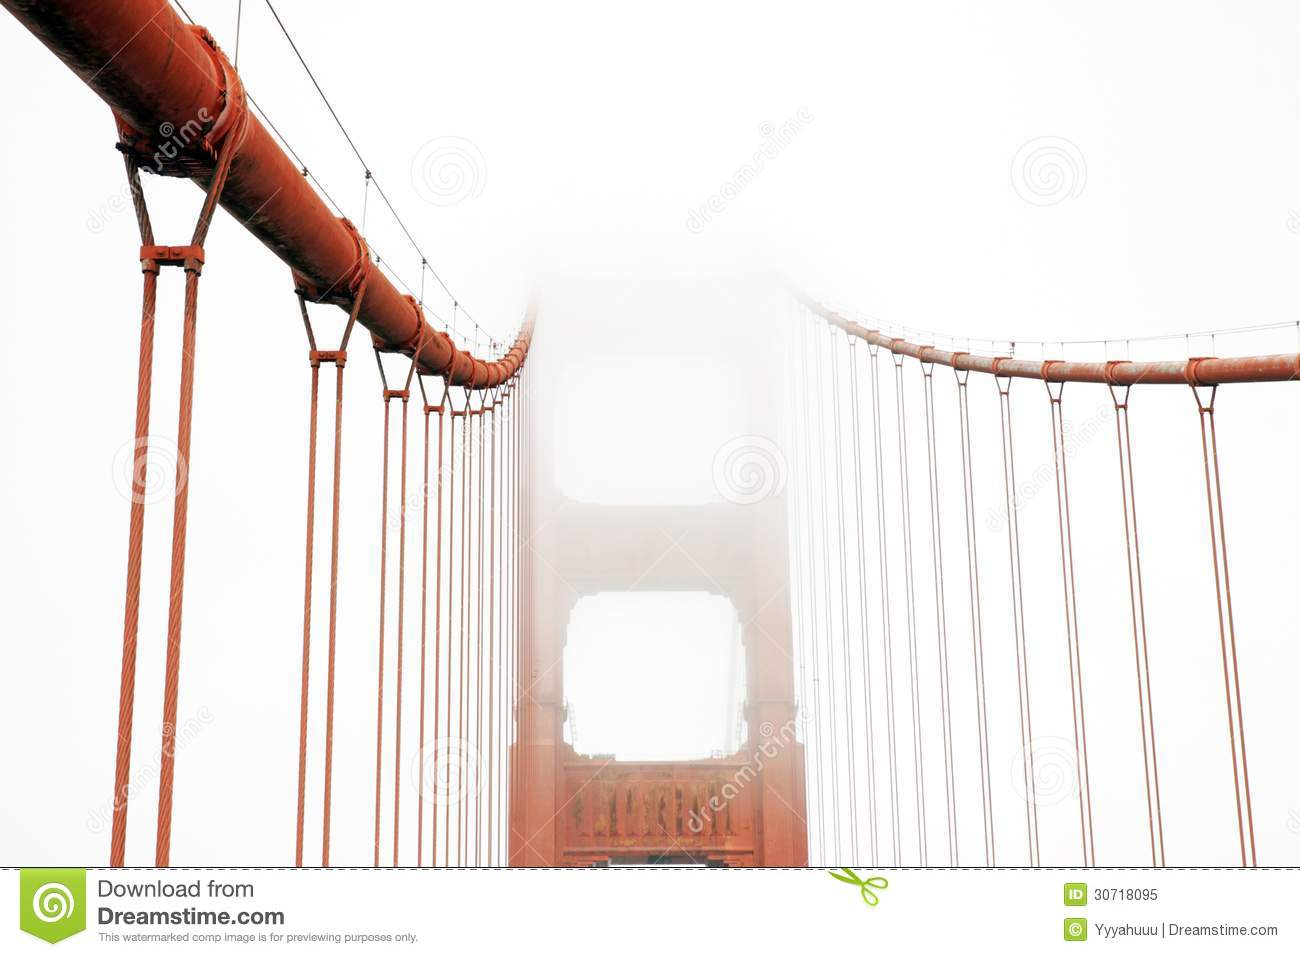 Golden Gate in a foggy day